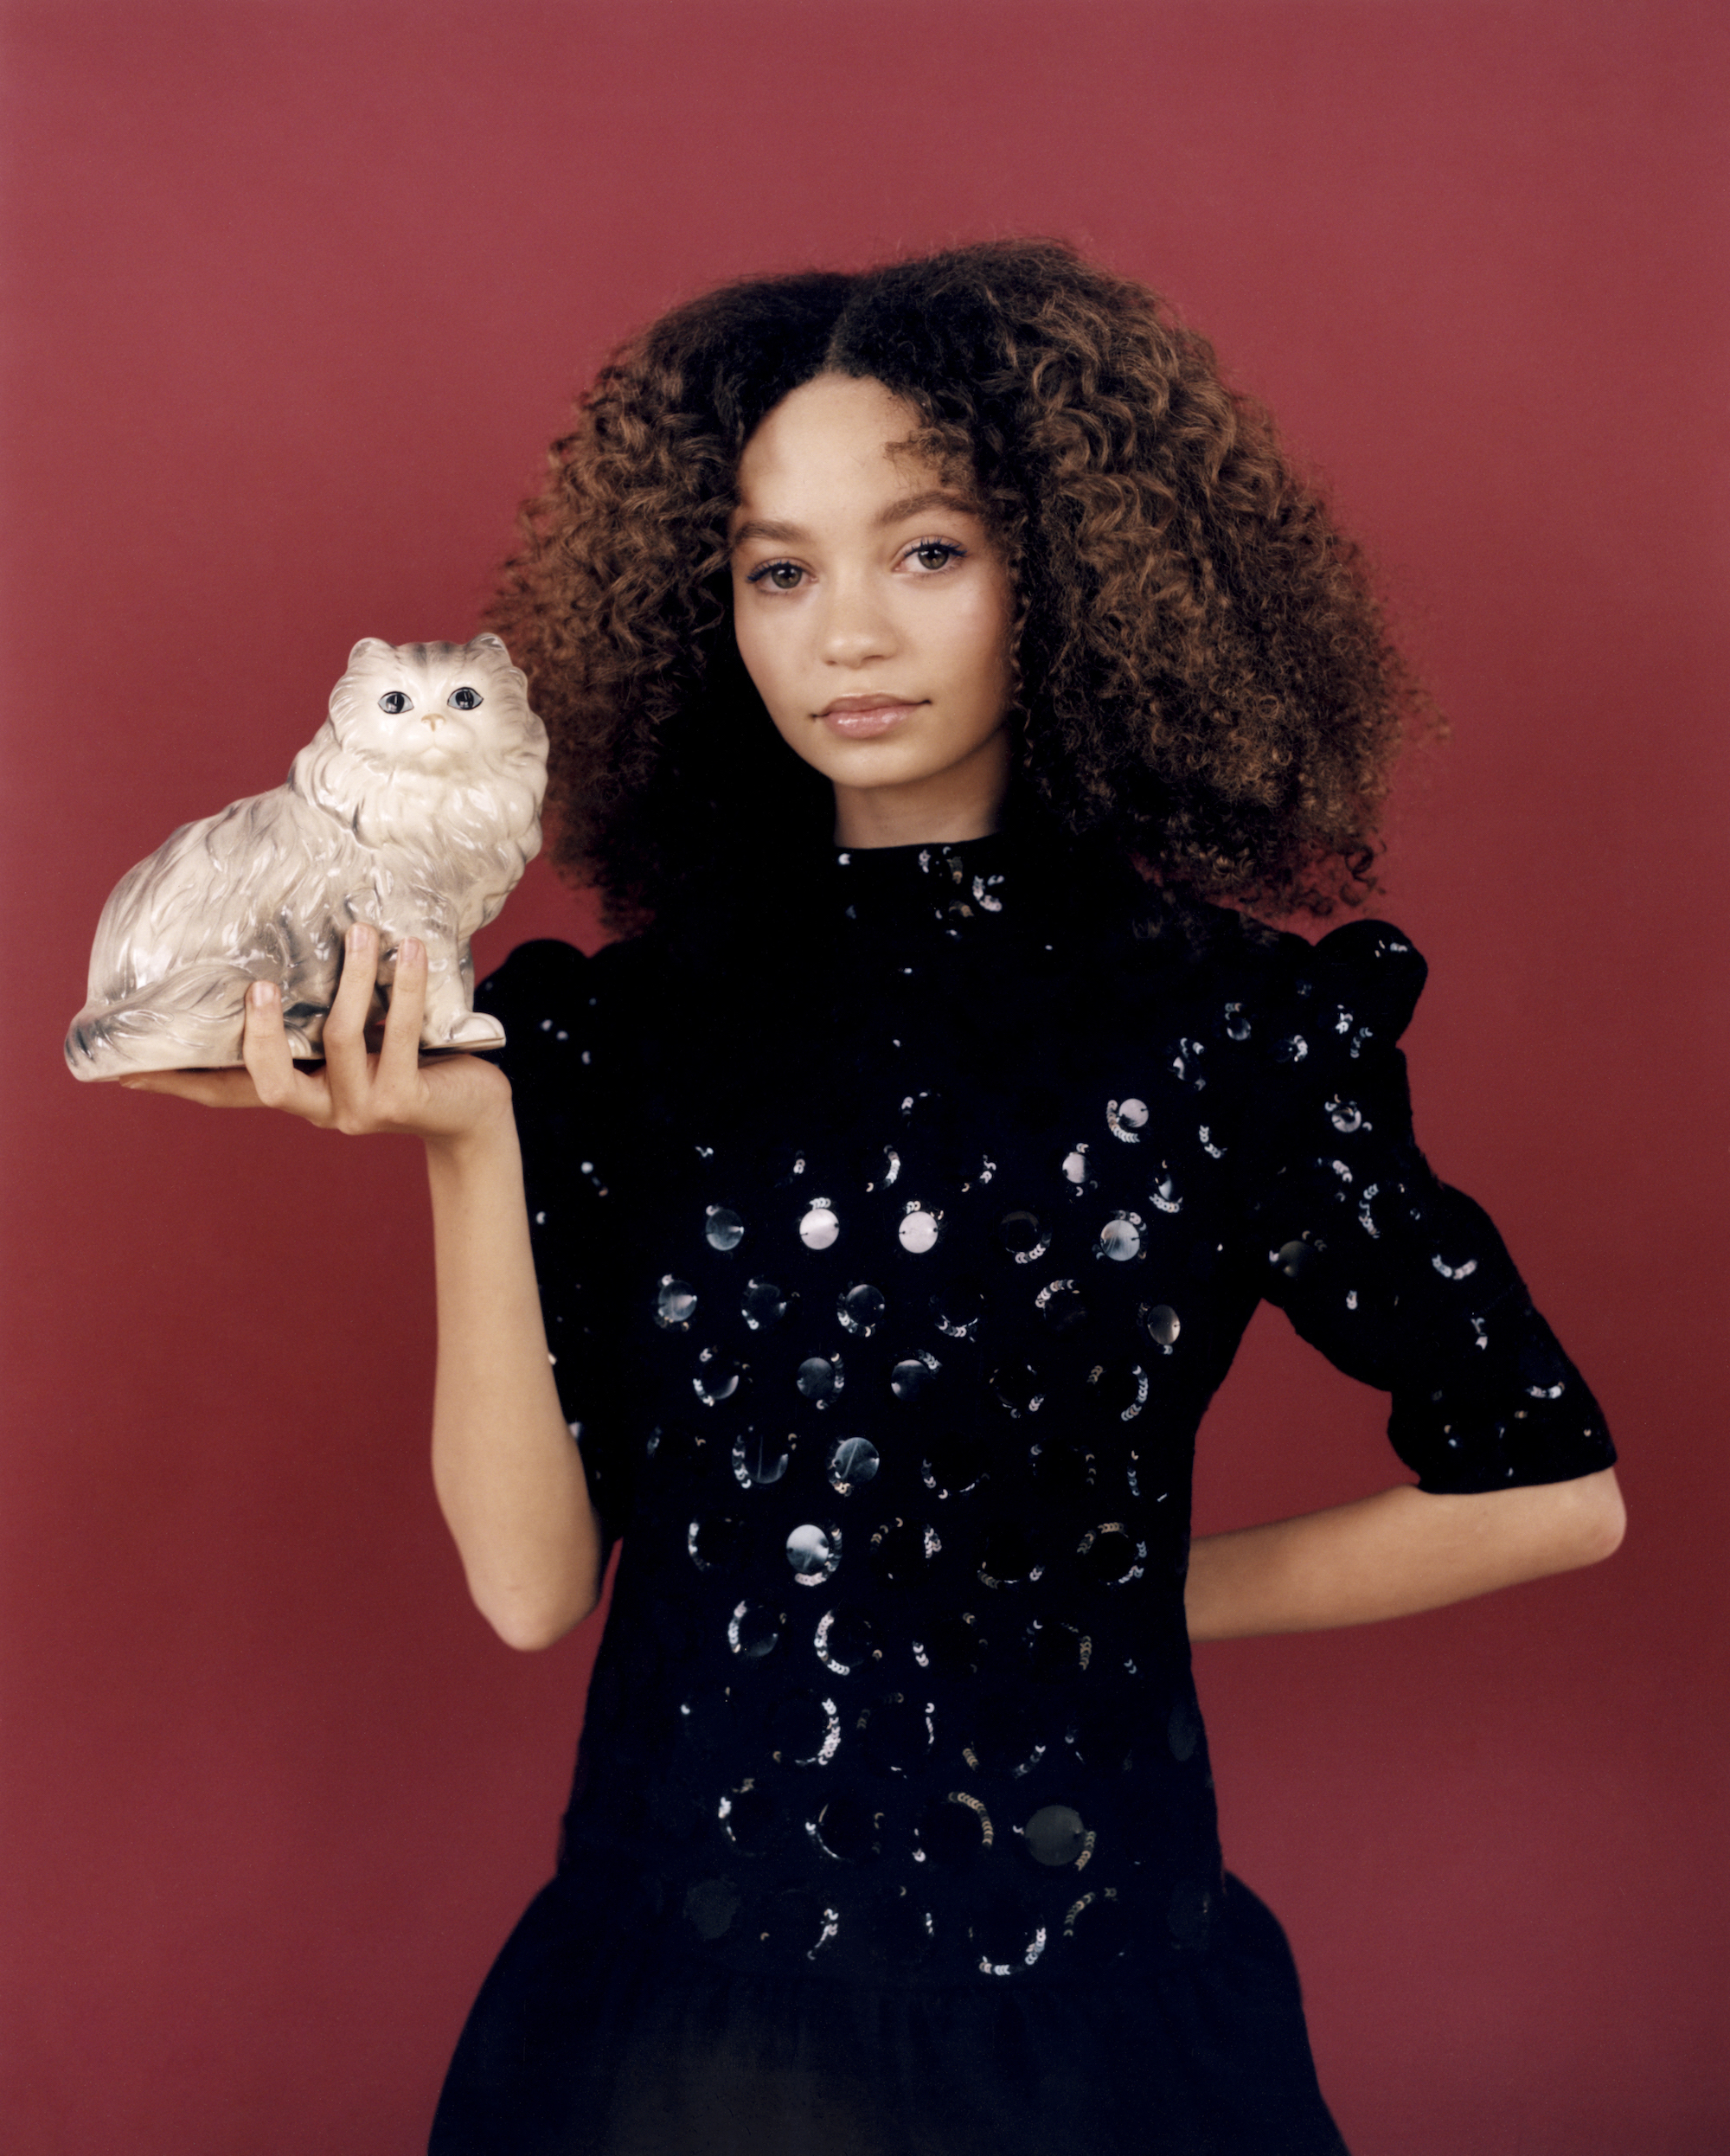 Thandie Newton's daughter Nico Parker, star of Dumbo in Wonderland's Spring 19 issue in sequin dress